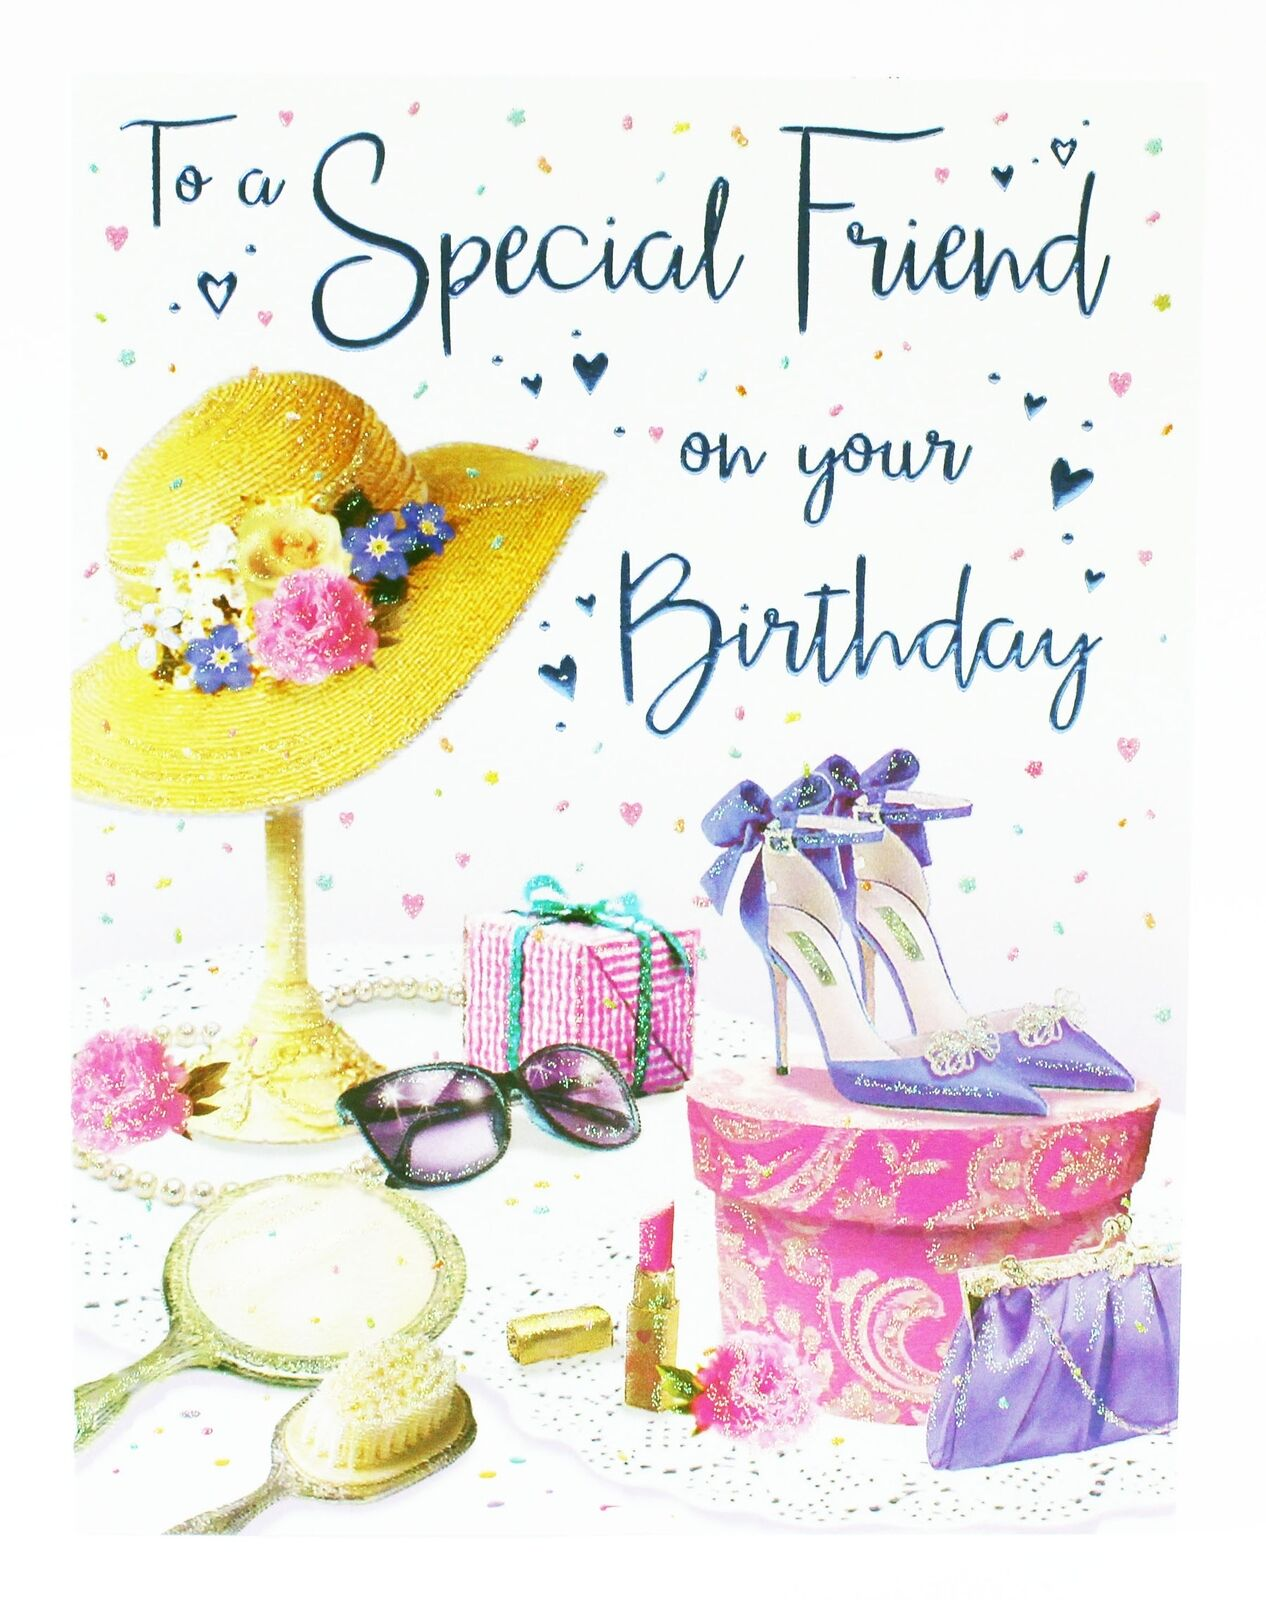 Happy birthday greeting card envelope seal for special friend happy birthday greeting card envelope seal for special friend ladies girly her 1 of 5only 3 available m4hsunfo